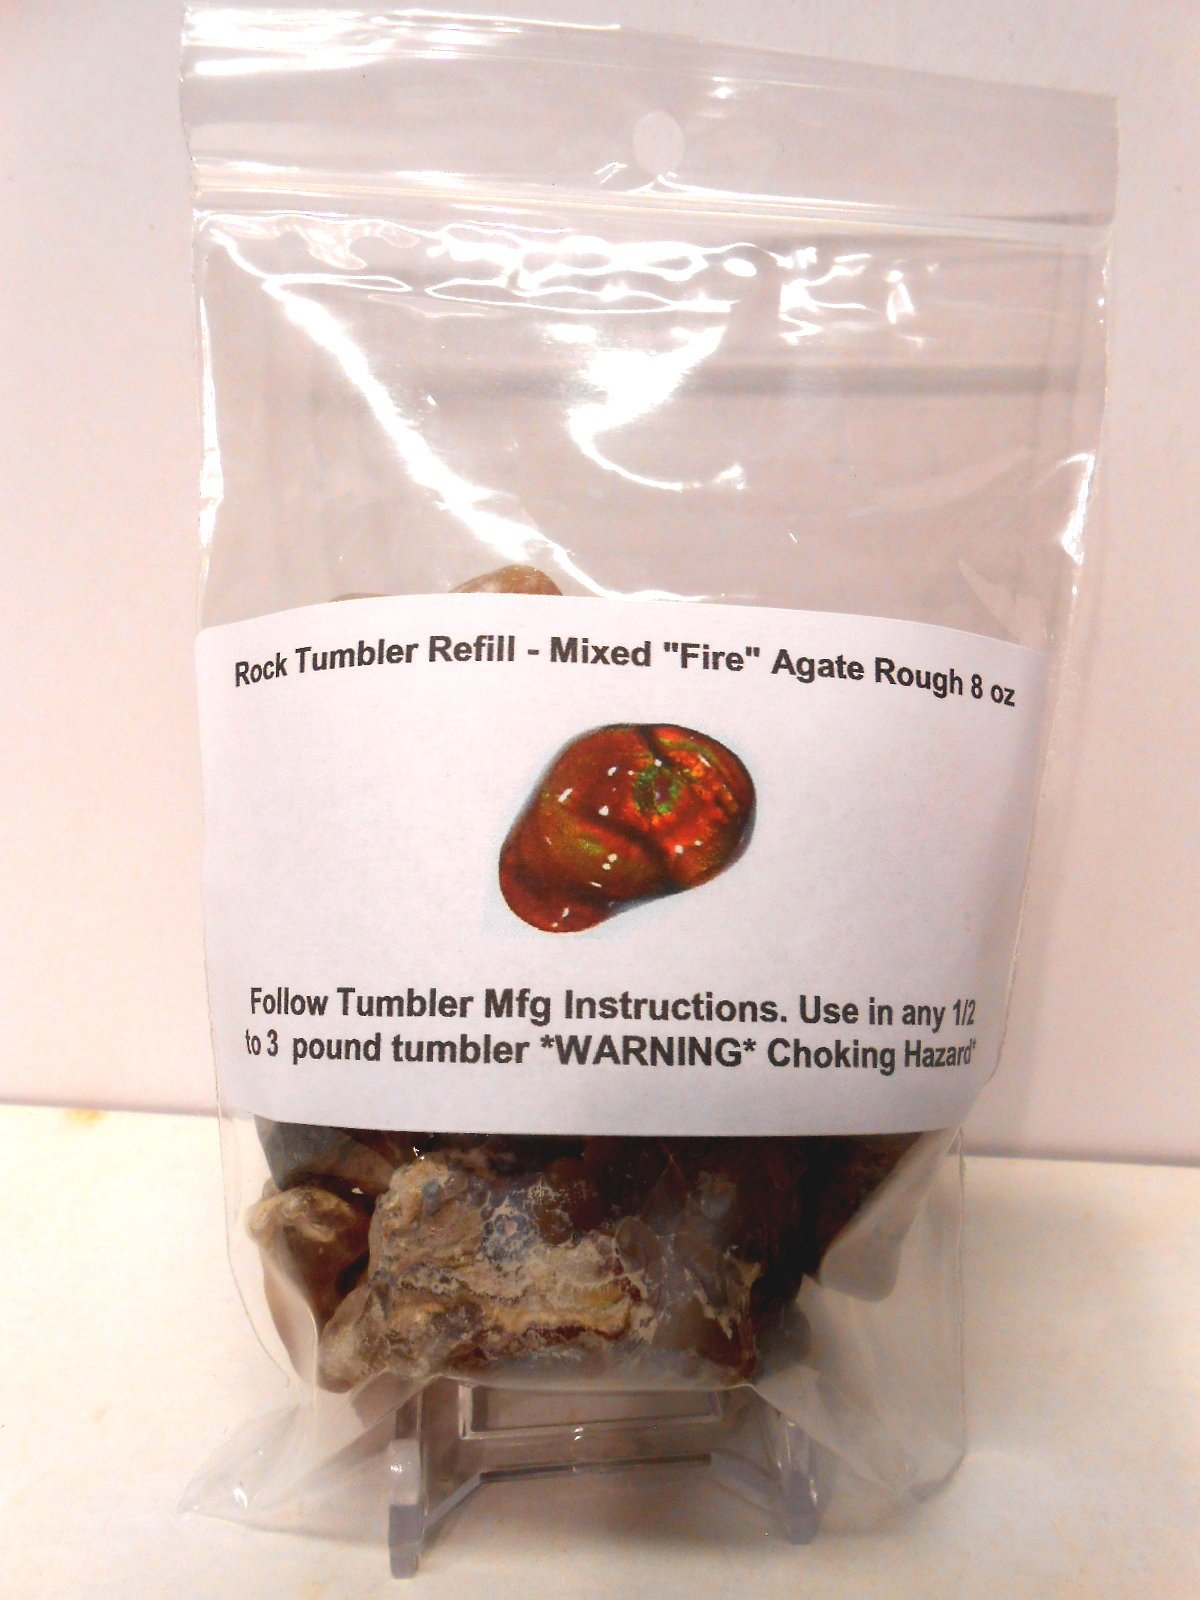 Rock Tumbler Gem Refill Kit Mixed ''Fire'' Agate Rough From The Mines of Calvillo,(Aguascalientes) Mexico, Deer Creek & Slaughter Mt. Arizona. 8 oz